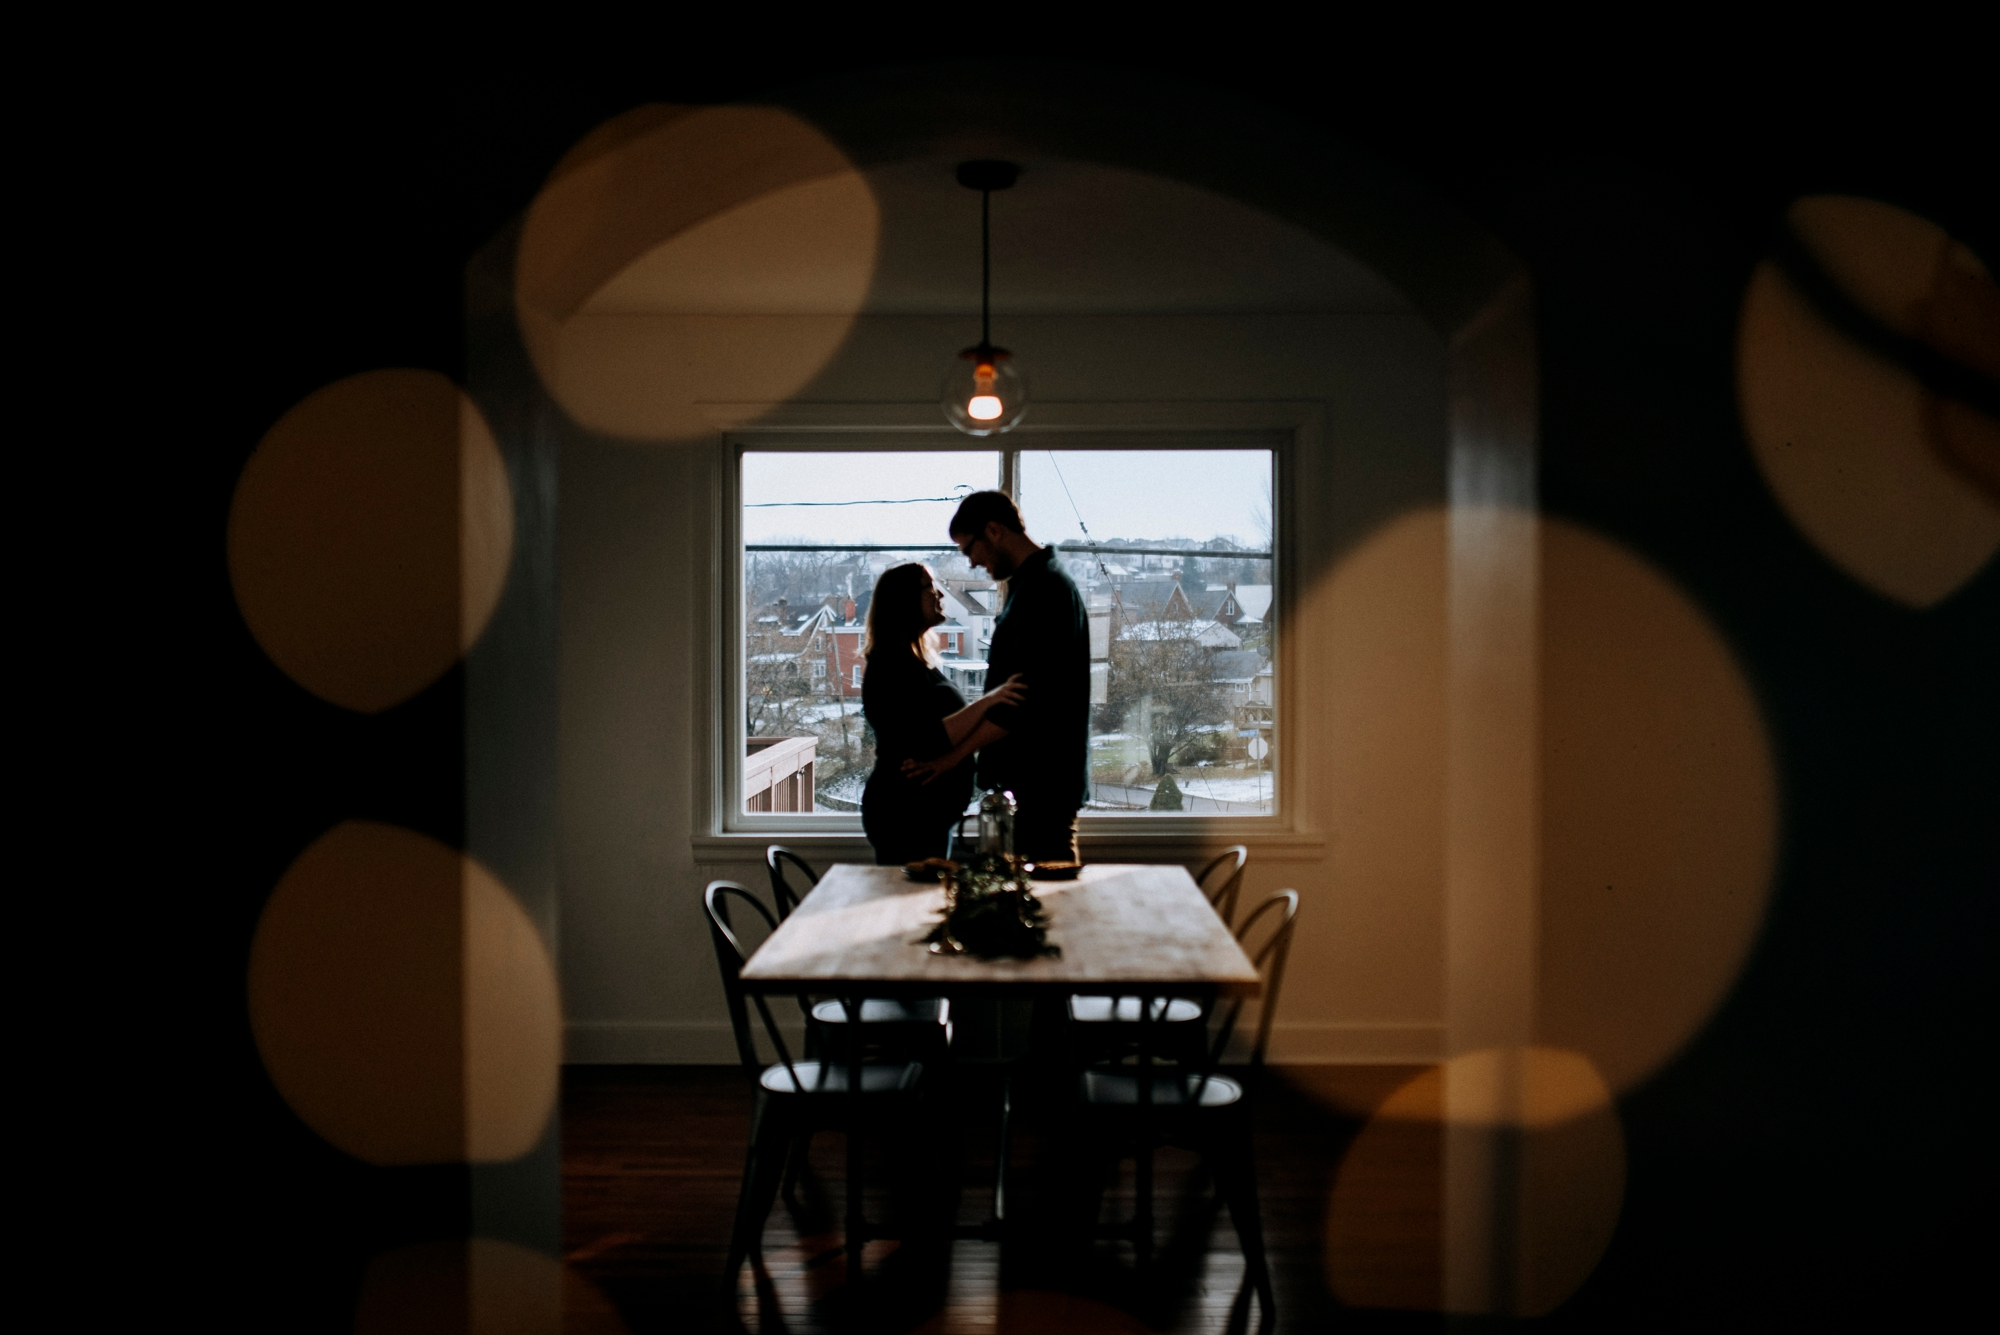 engagement pictures at home